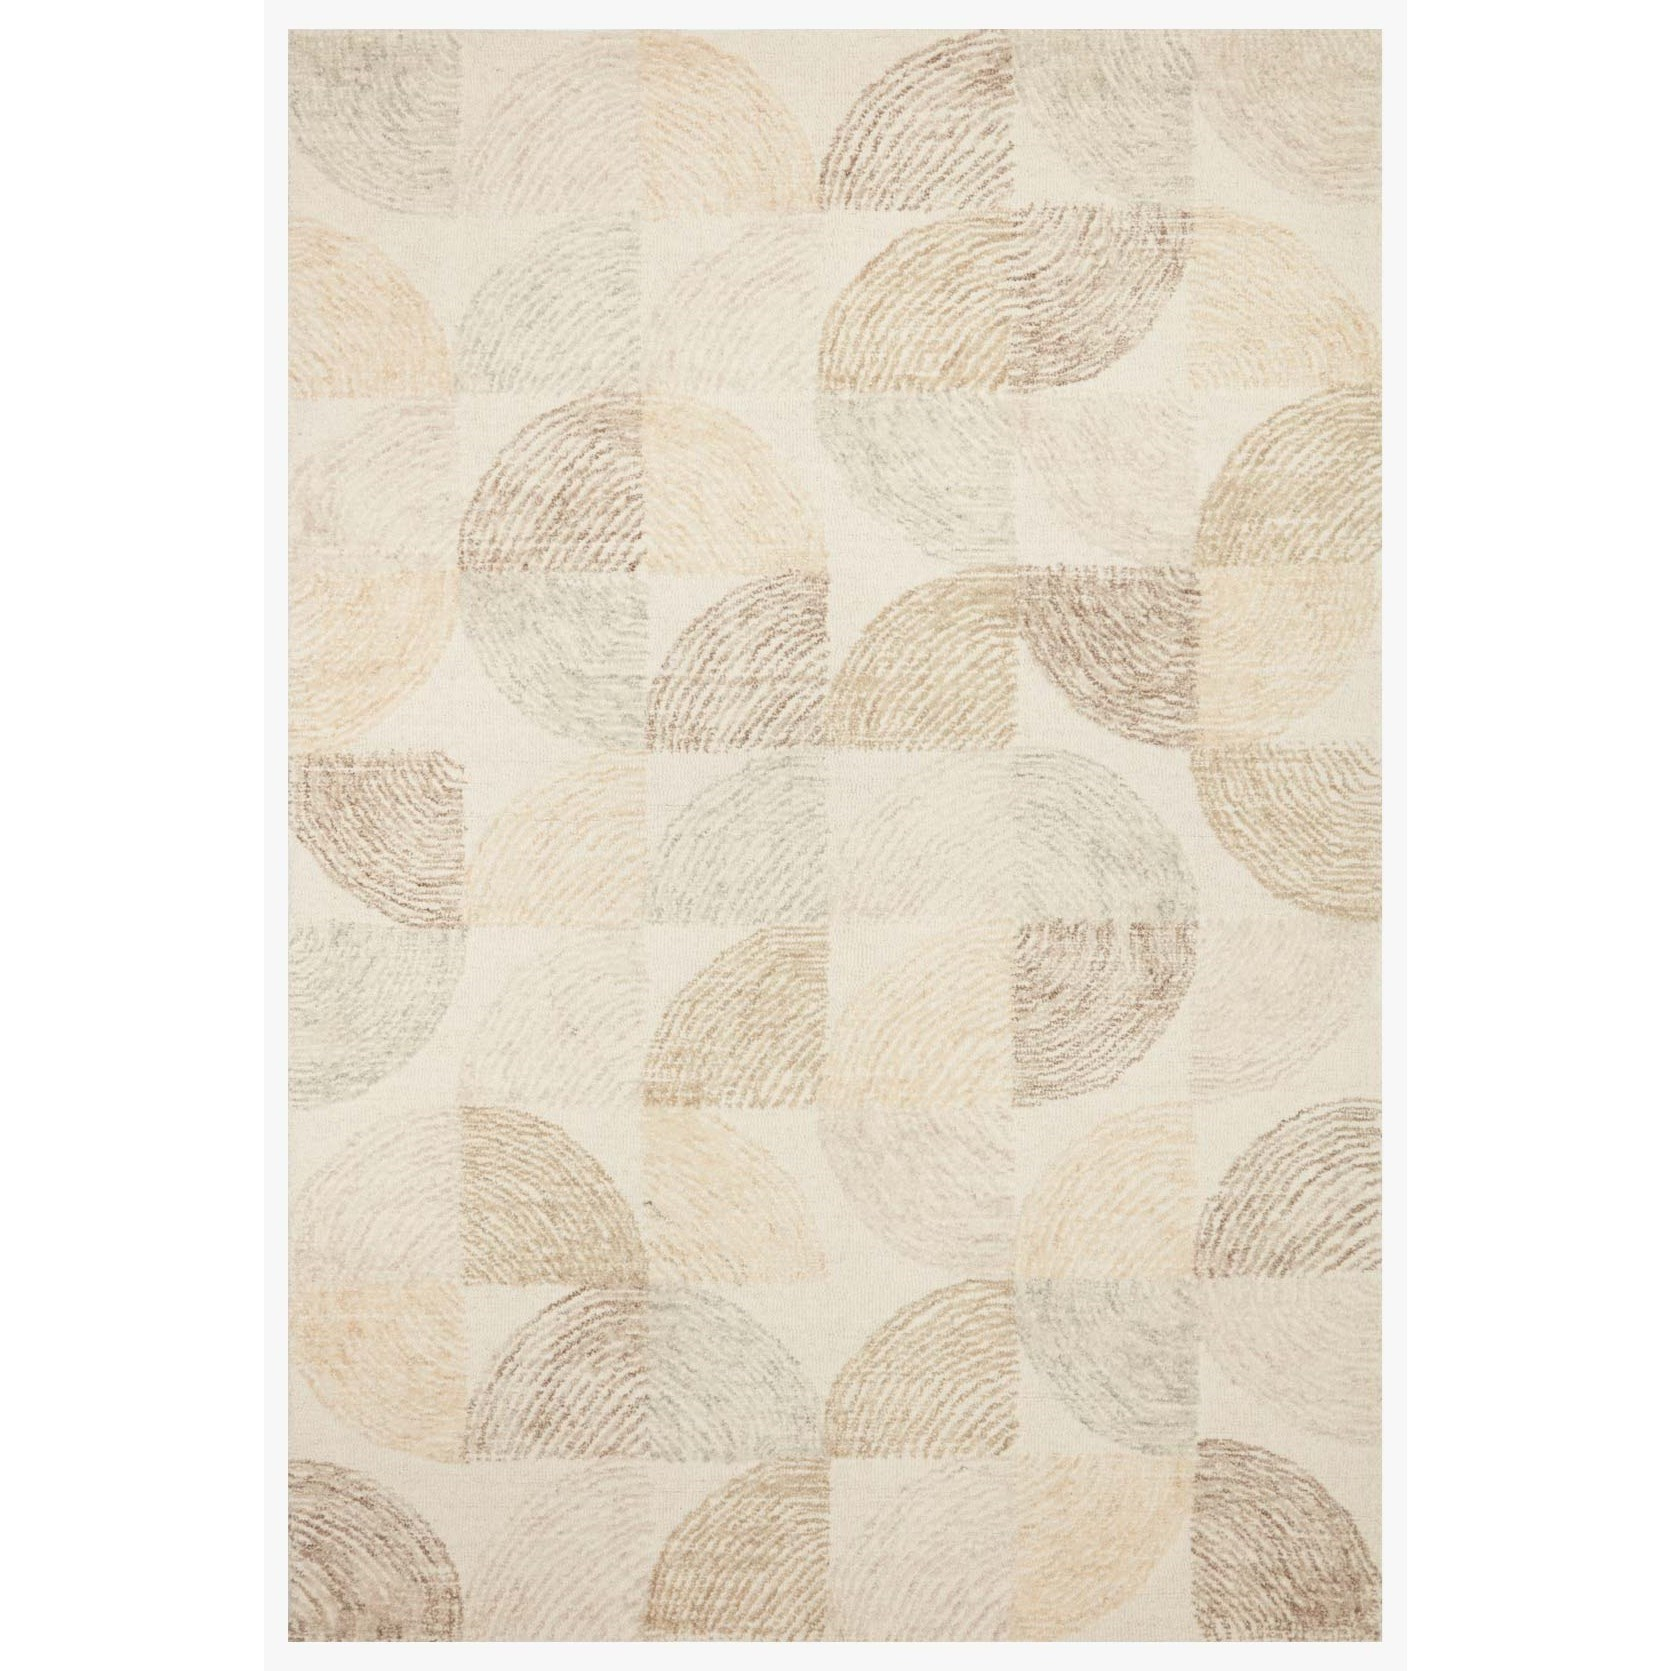 "Milo 5'0"" x 7'6"" Pebble / Multi Rug by Loloi Rugs at Sprintz Furniture"